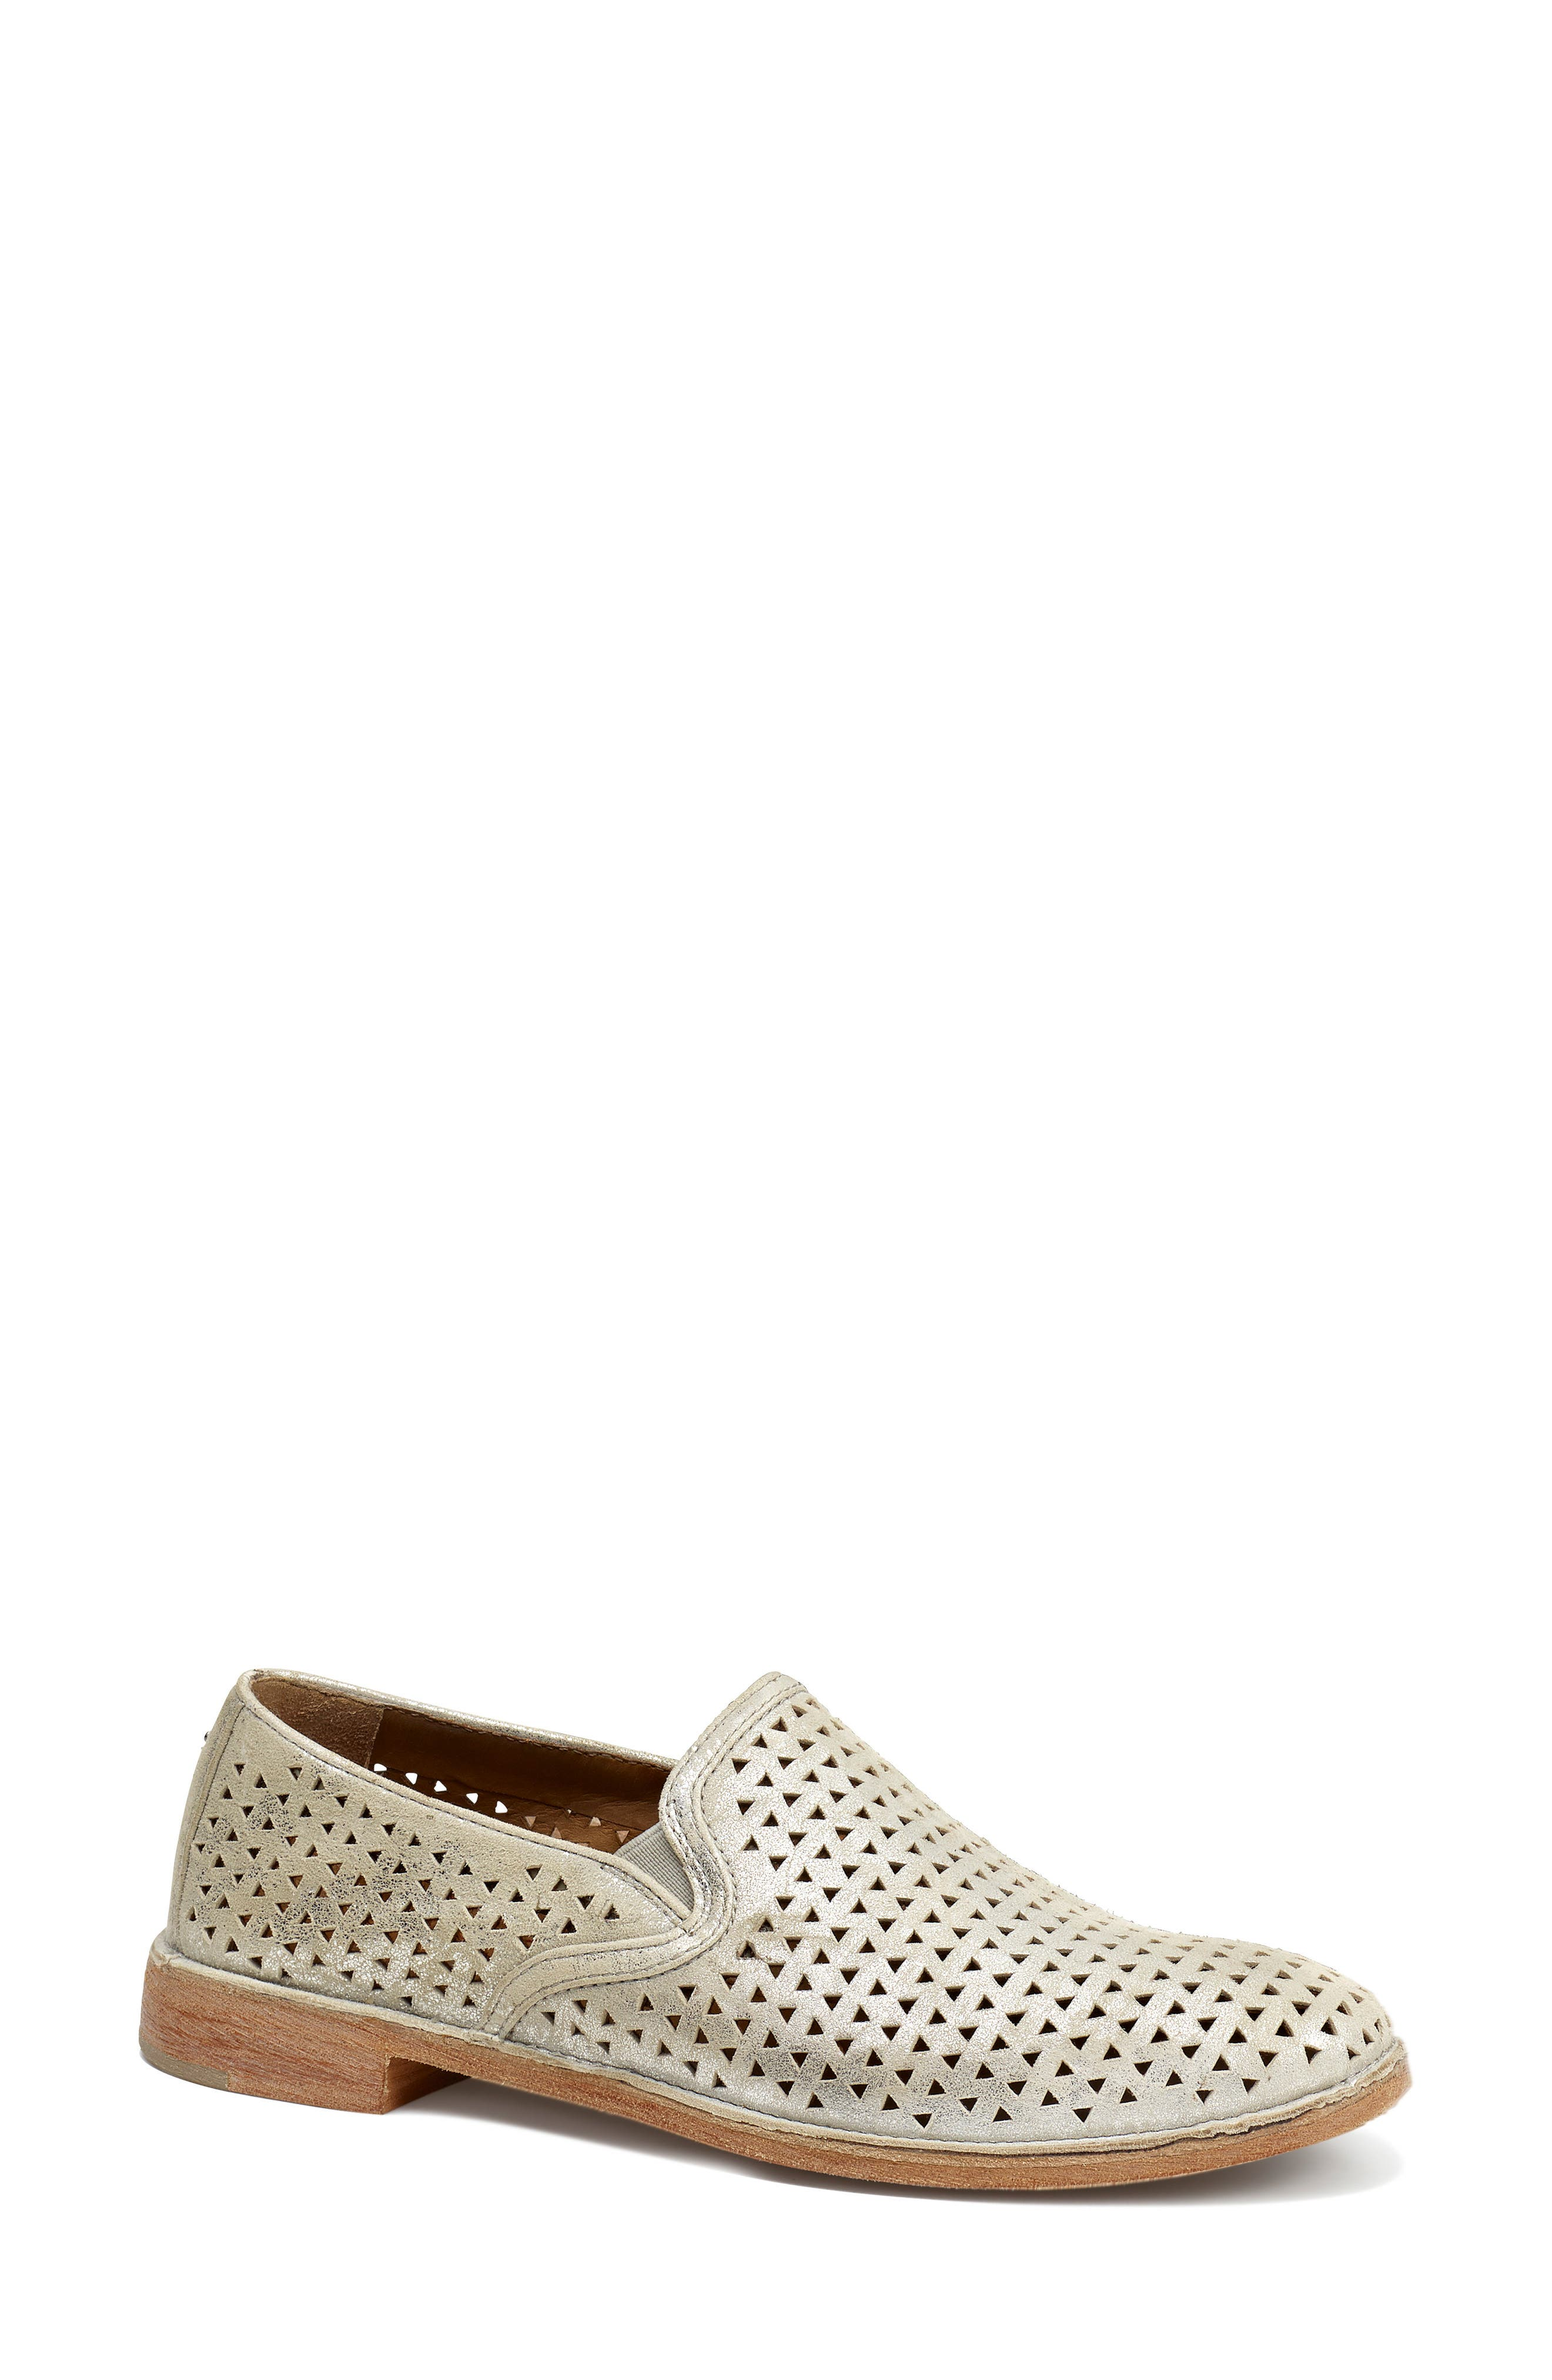 TRASK, Ali Perforated Loafer, Main thumbnail 1, color, IVORY METALLIC SUEDE